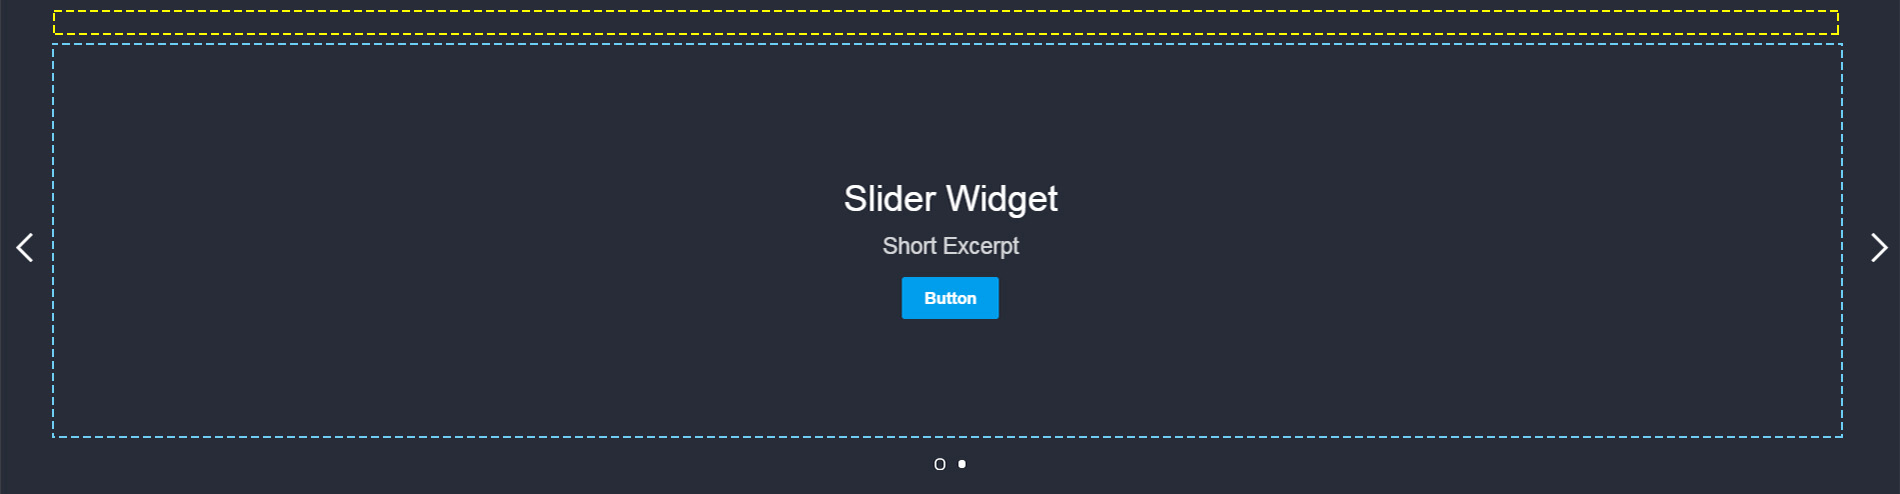 layers_before_slider_widget_inner